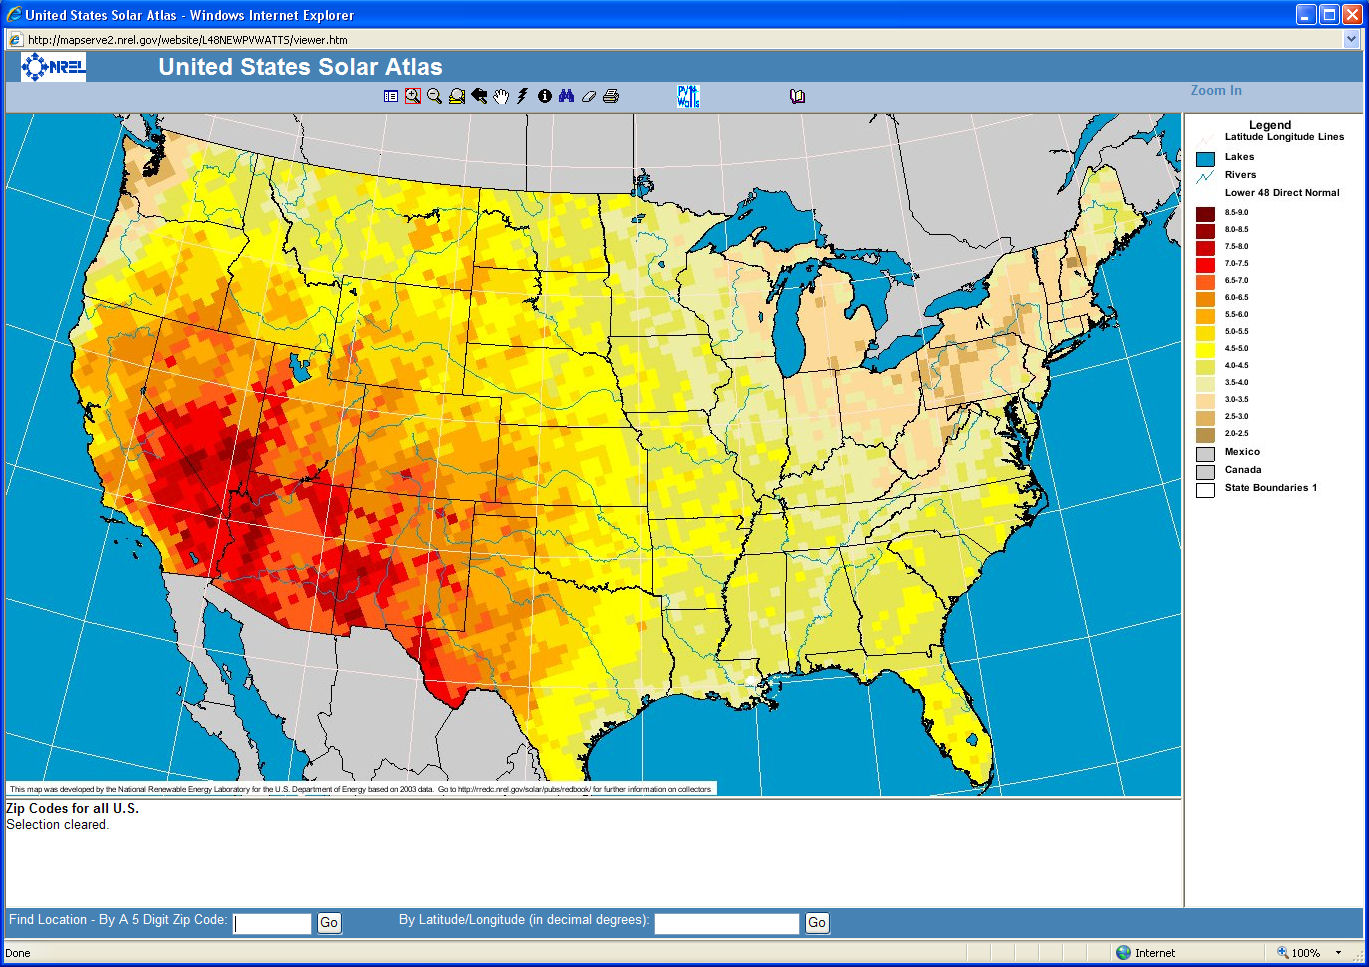 This map viewer from the National Renewable Energy Laboratory (NREL) uses Web GIS